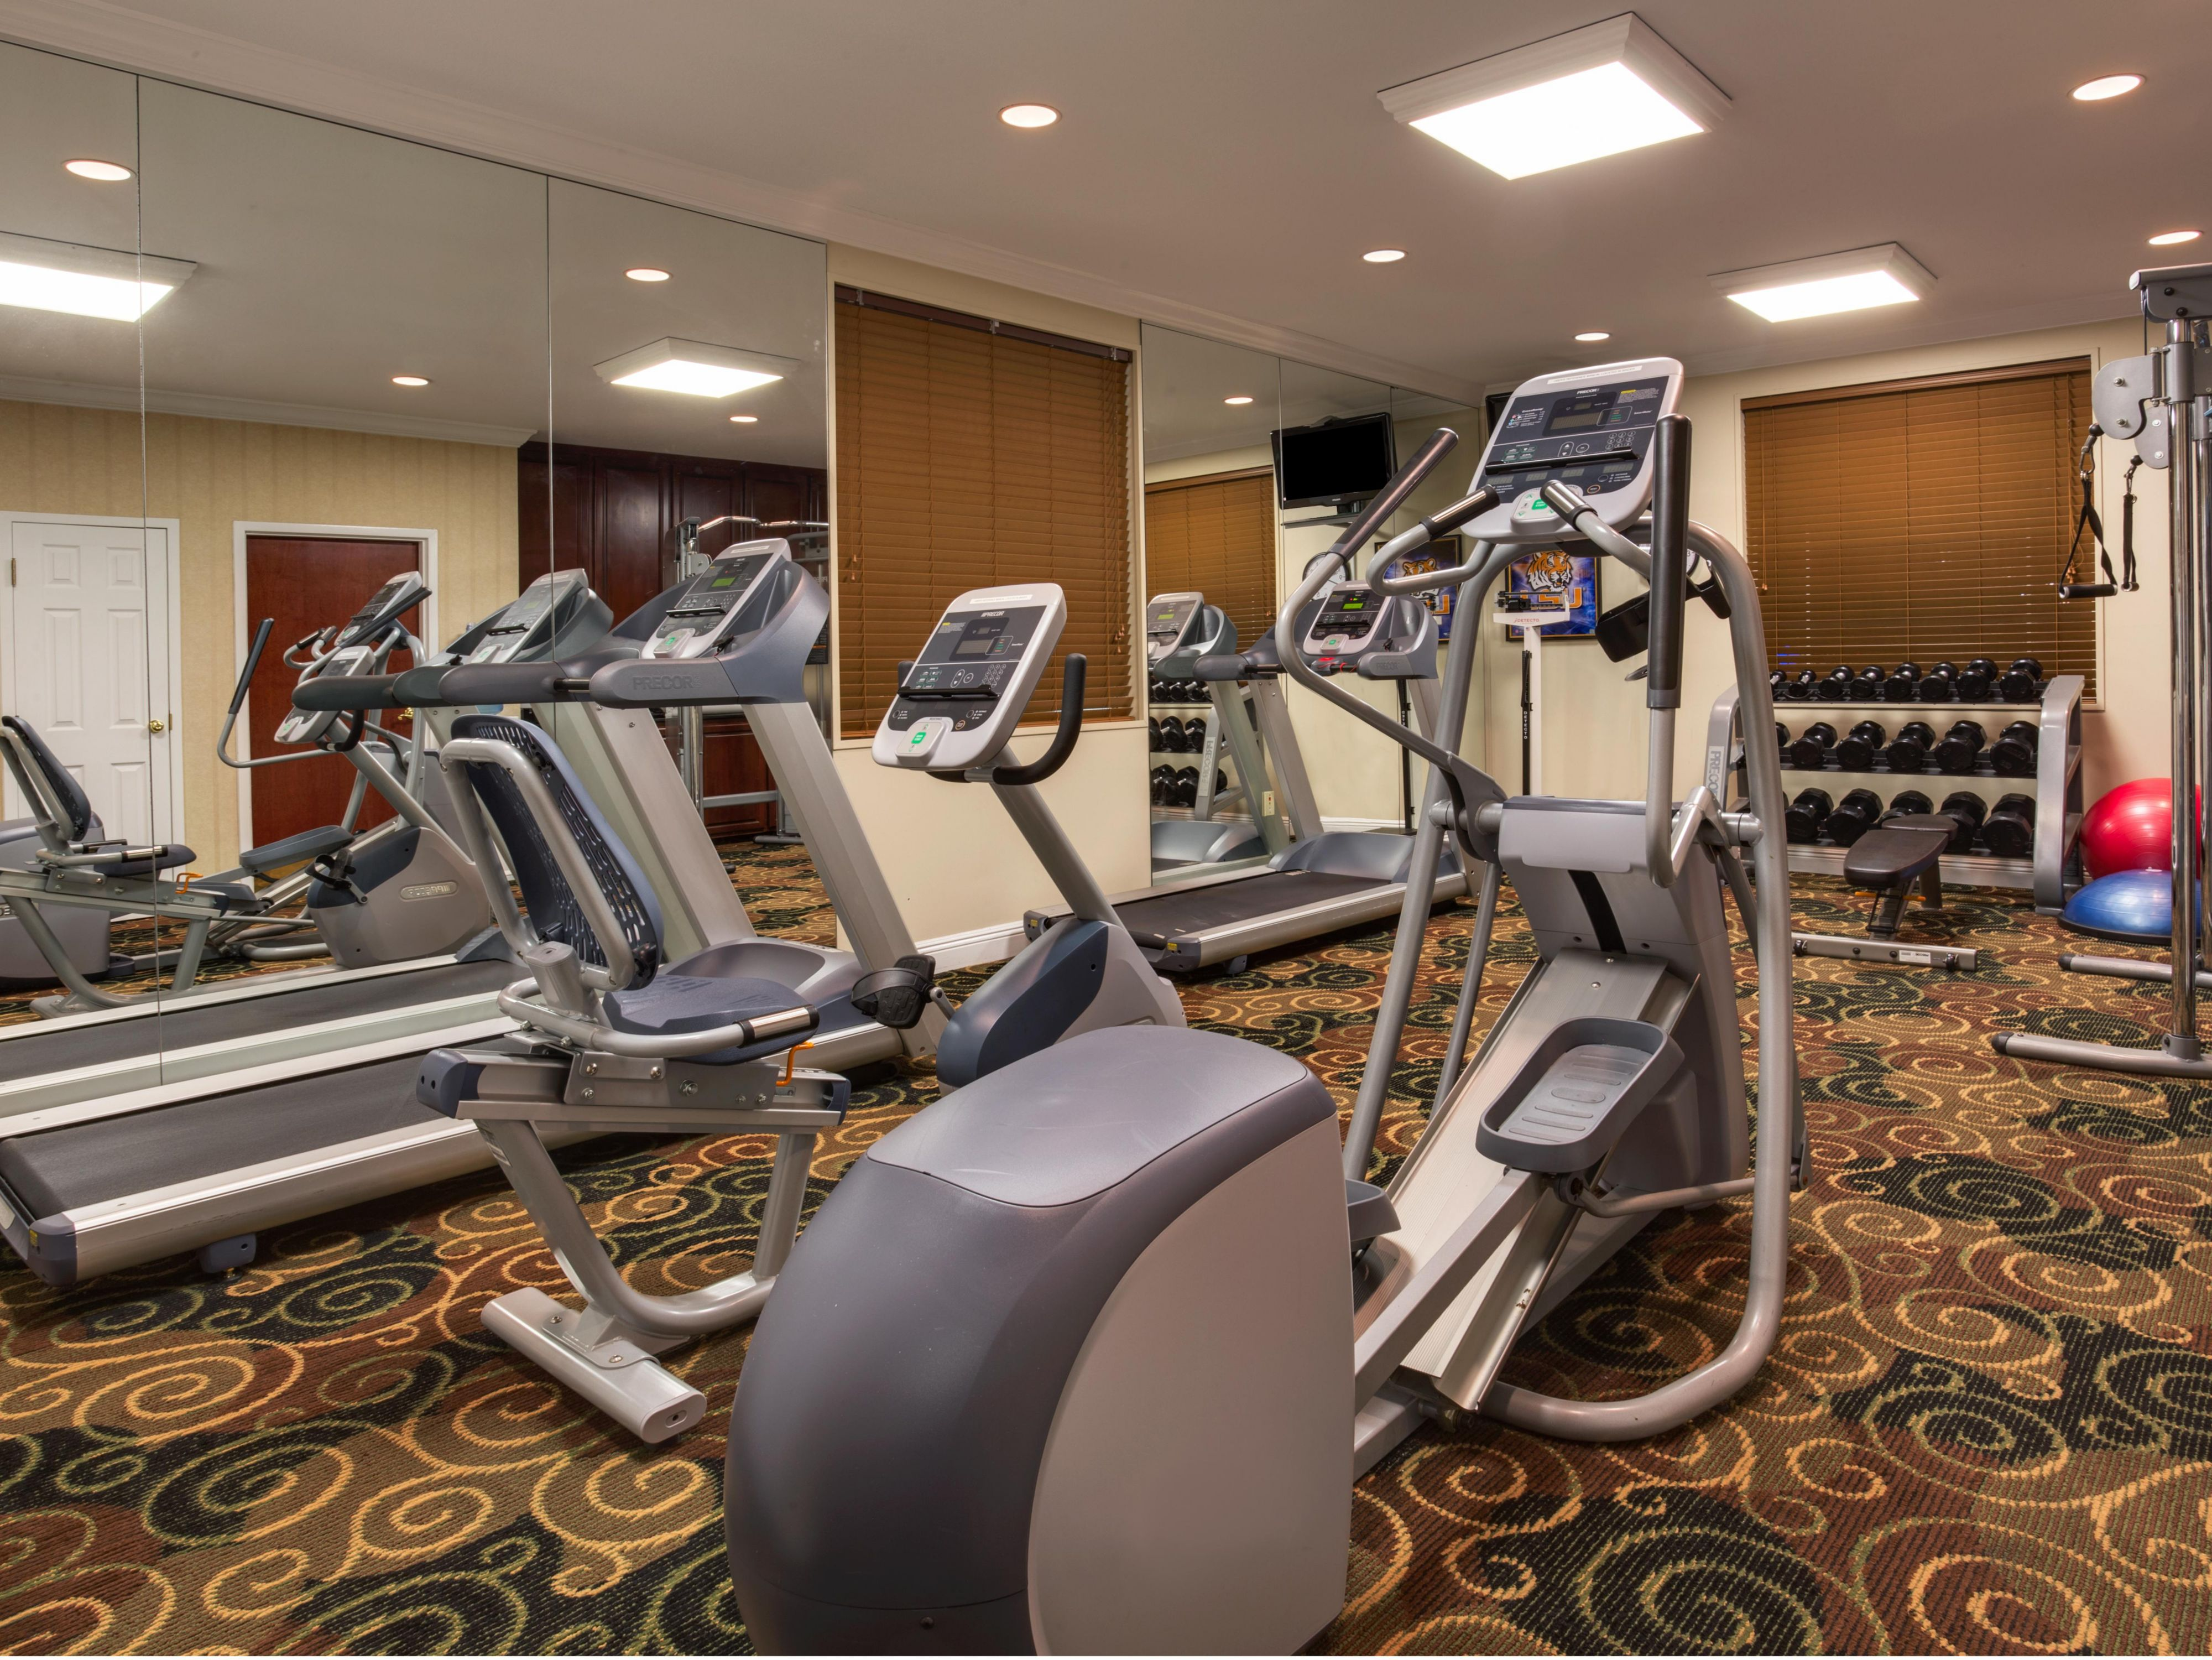 Workout in our well-equipped Fitness Center